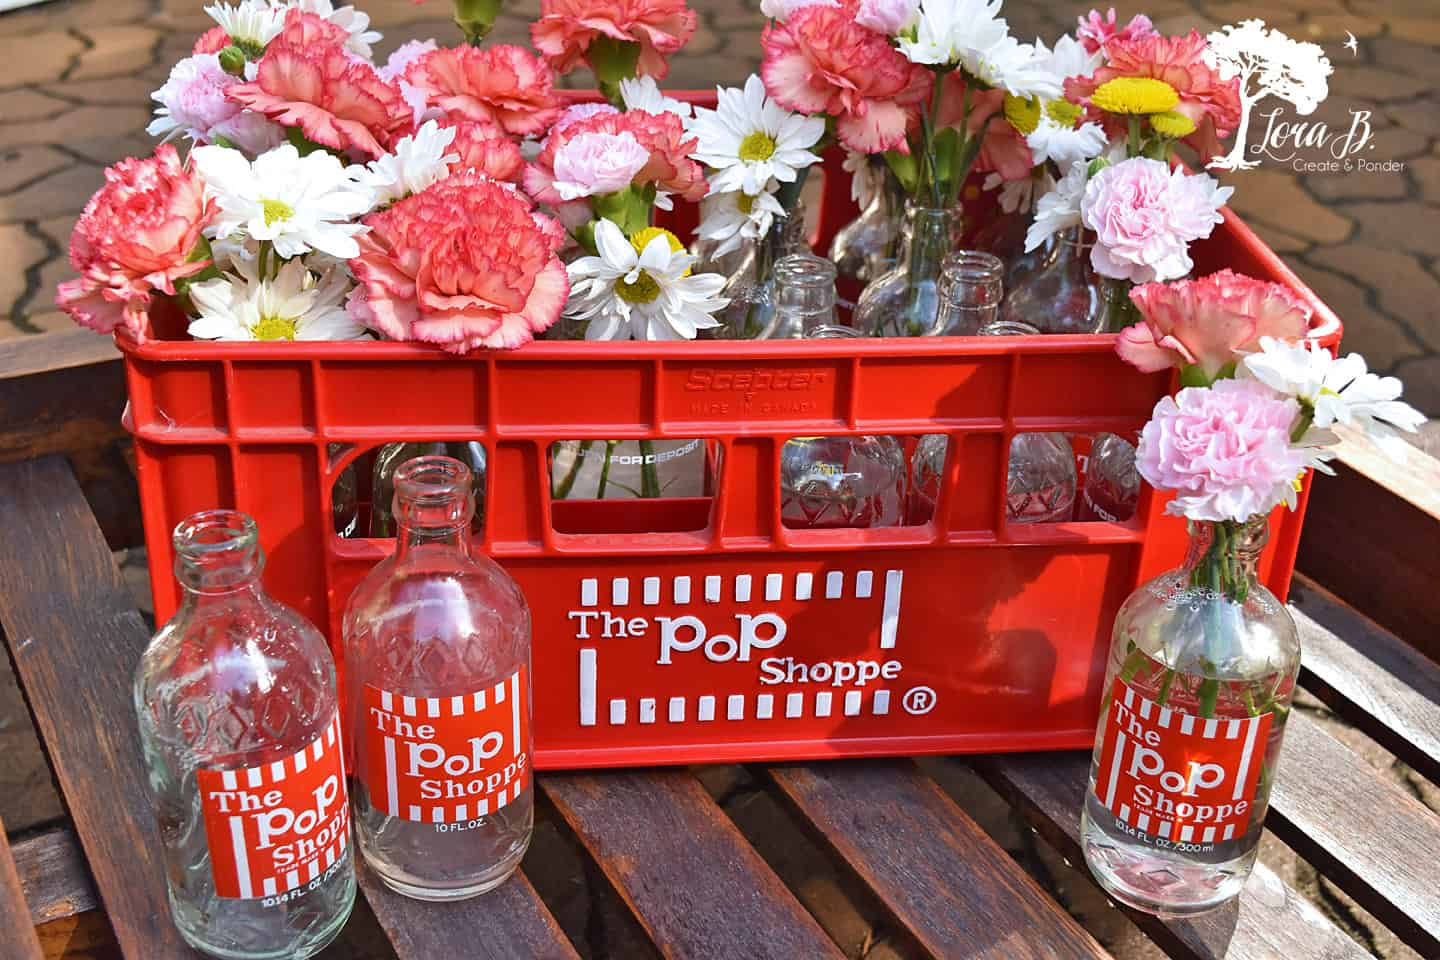 Pop shoppe bottles